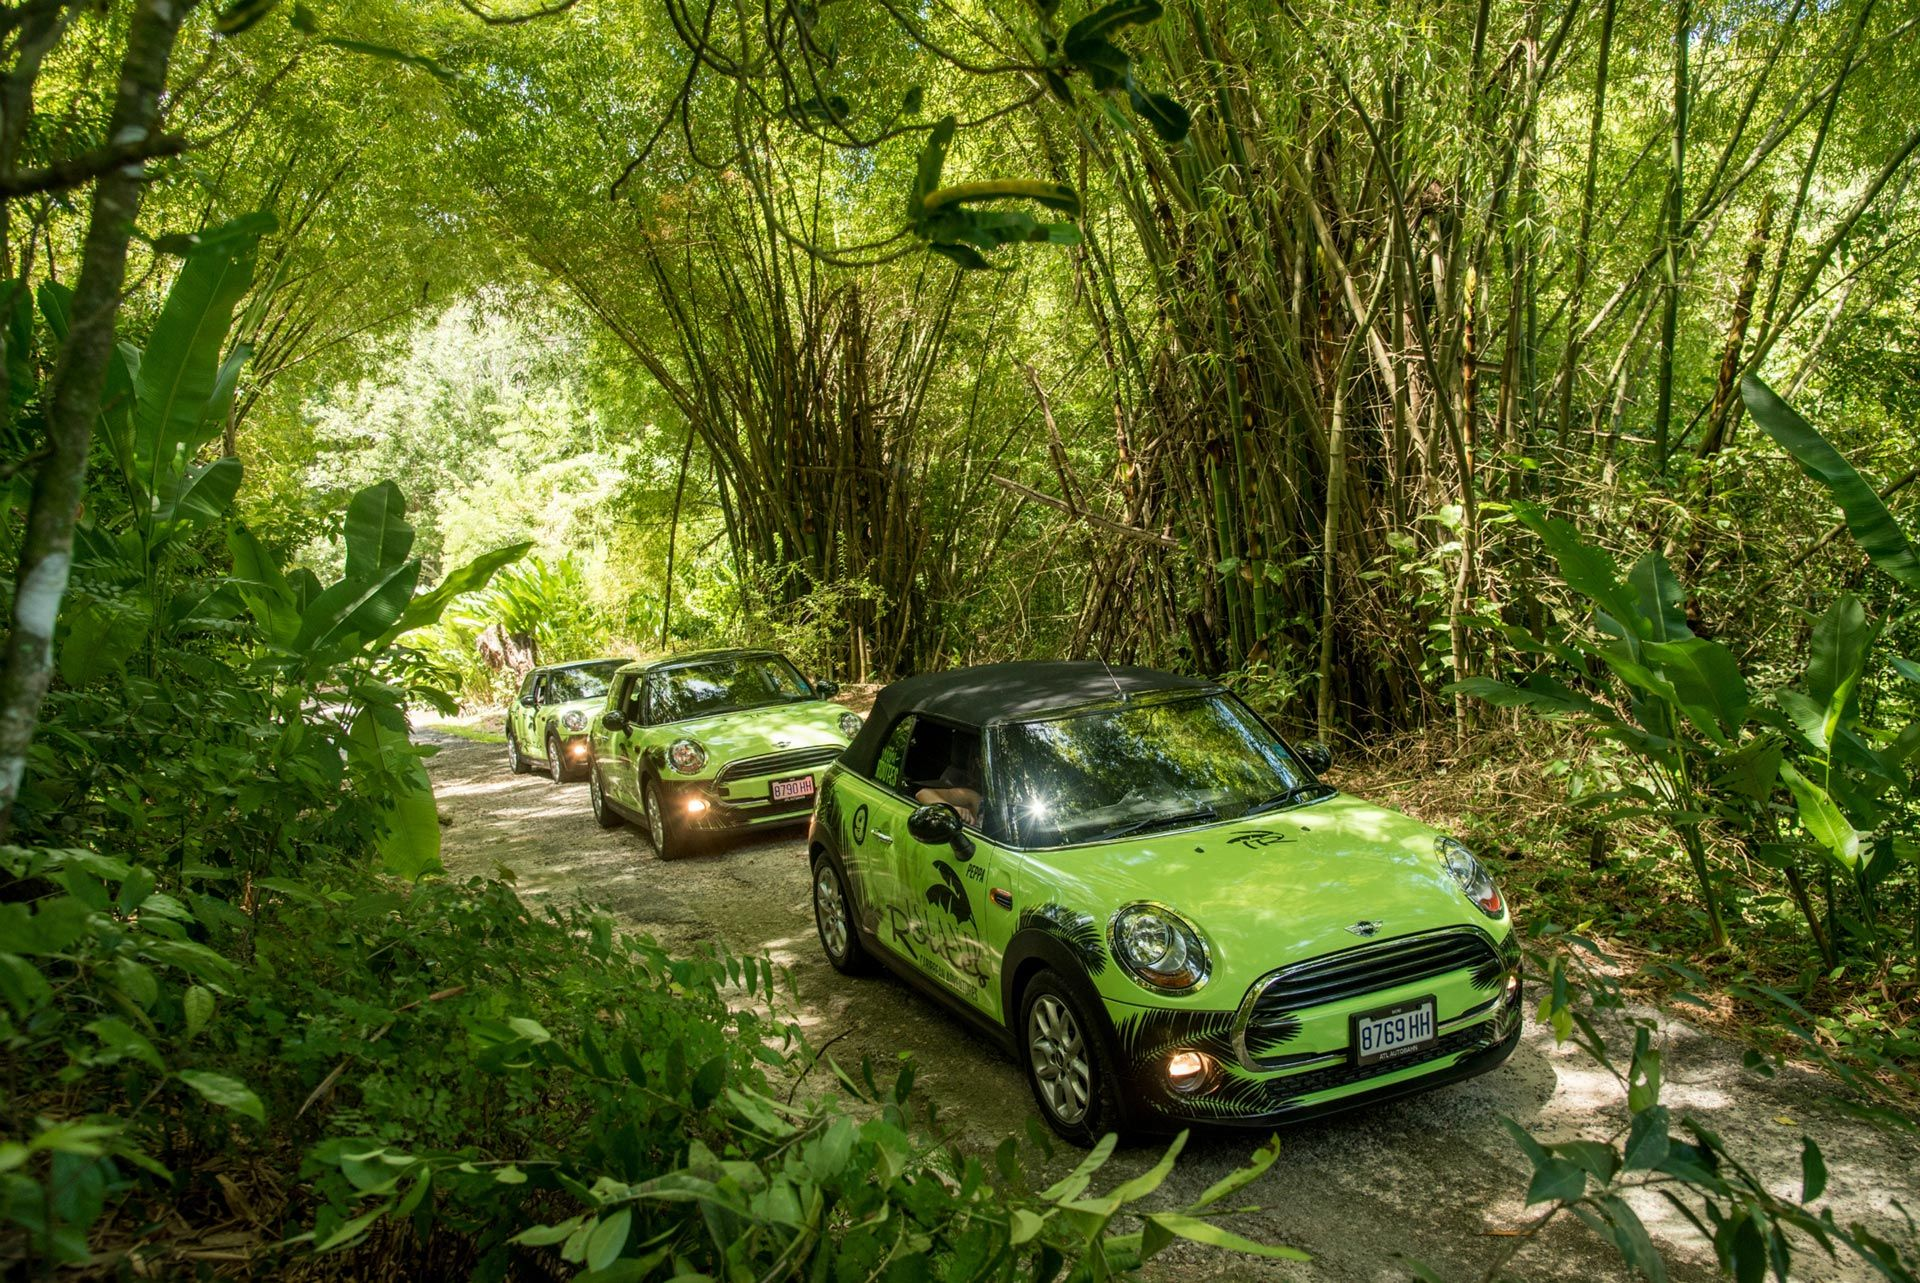 Mini Coopers on their way exploring Ocho Rios